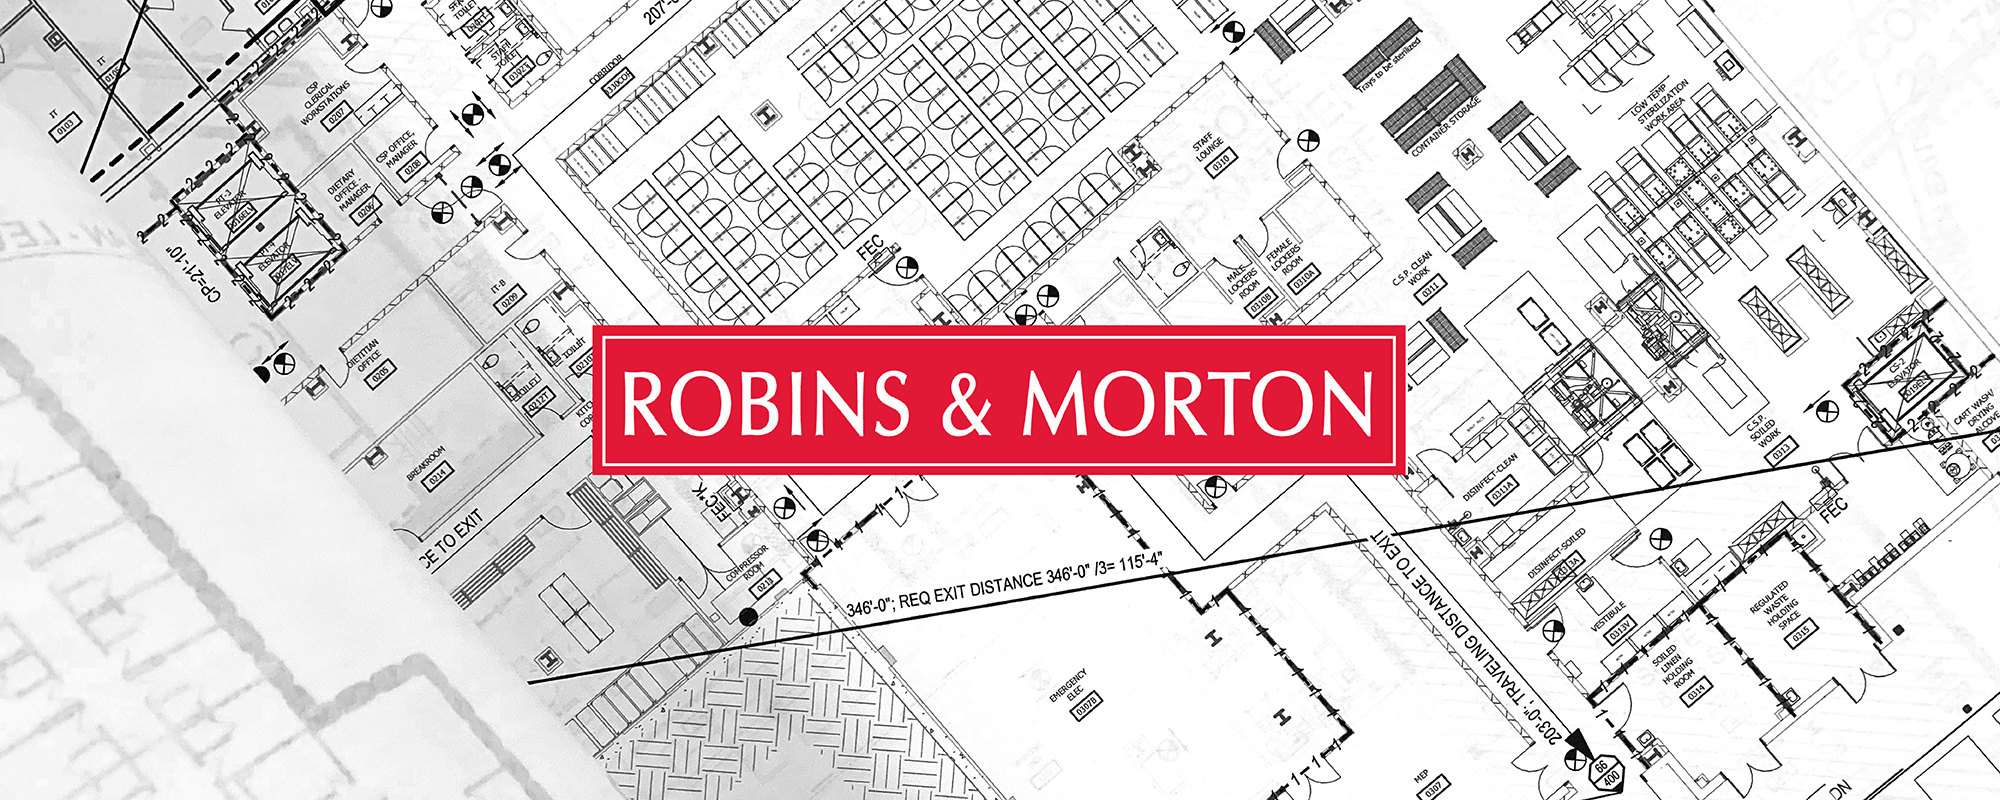 Robins & Morton receives Training Support Facility construction contract at Fort Rucker